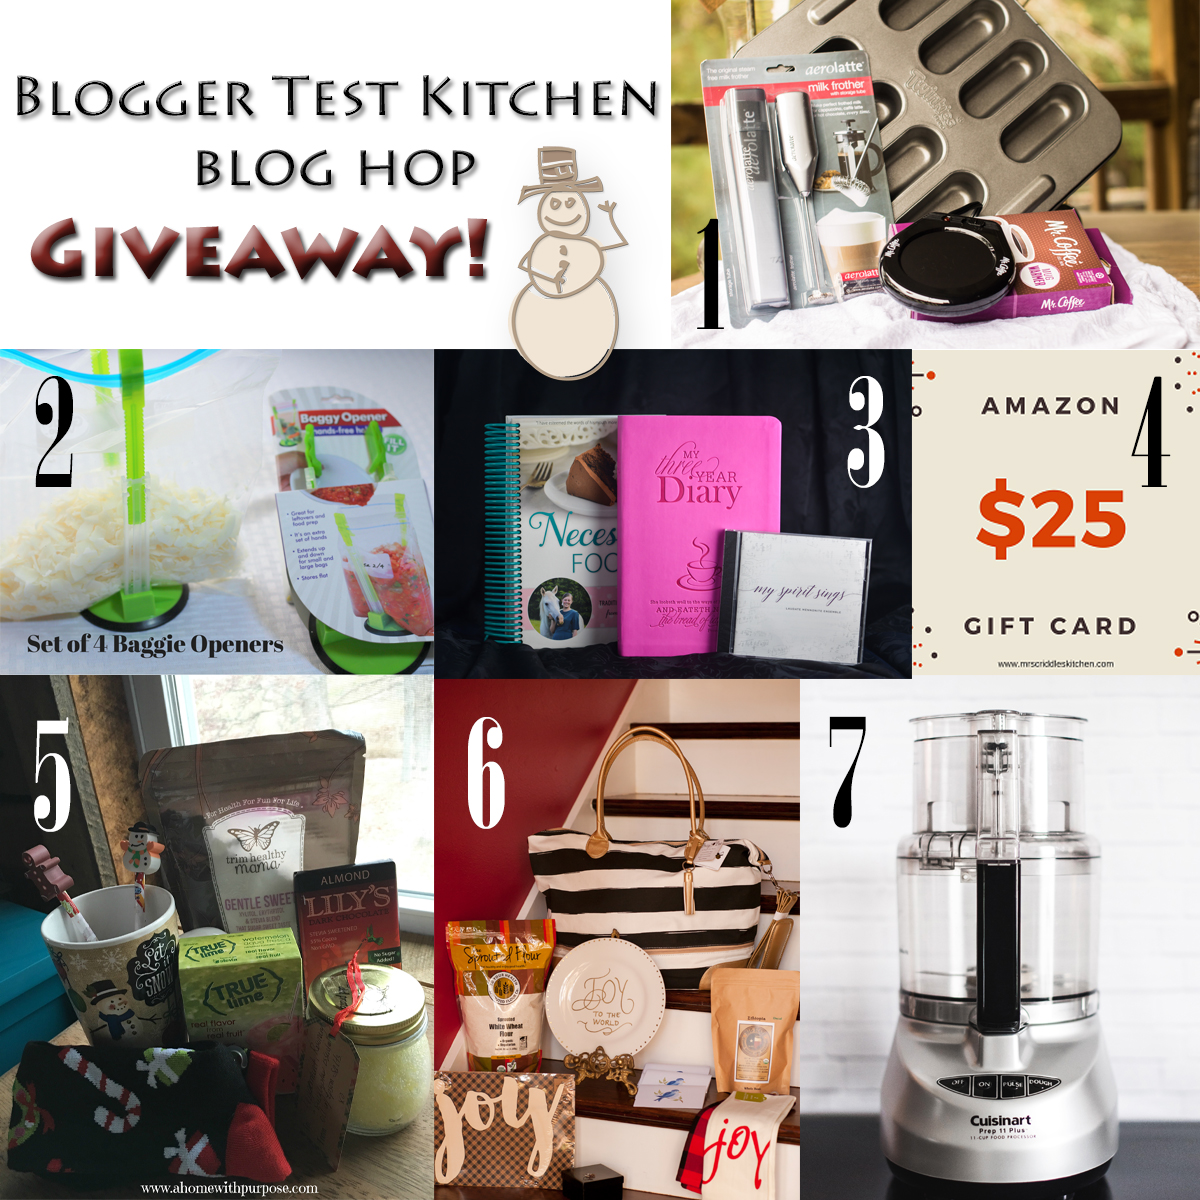 Blogger Test Kitchen Blog Hop Giveaway 2016